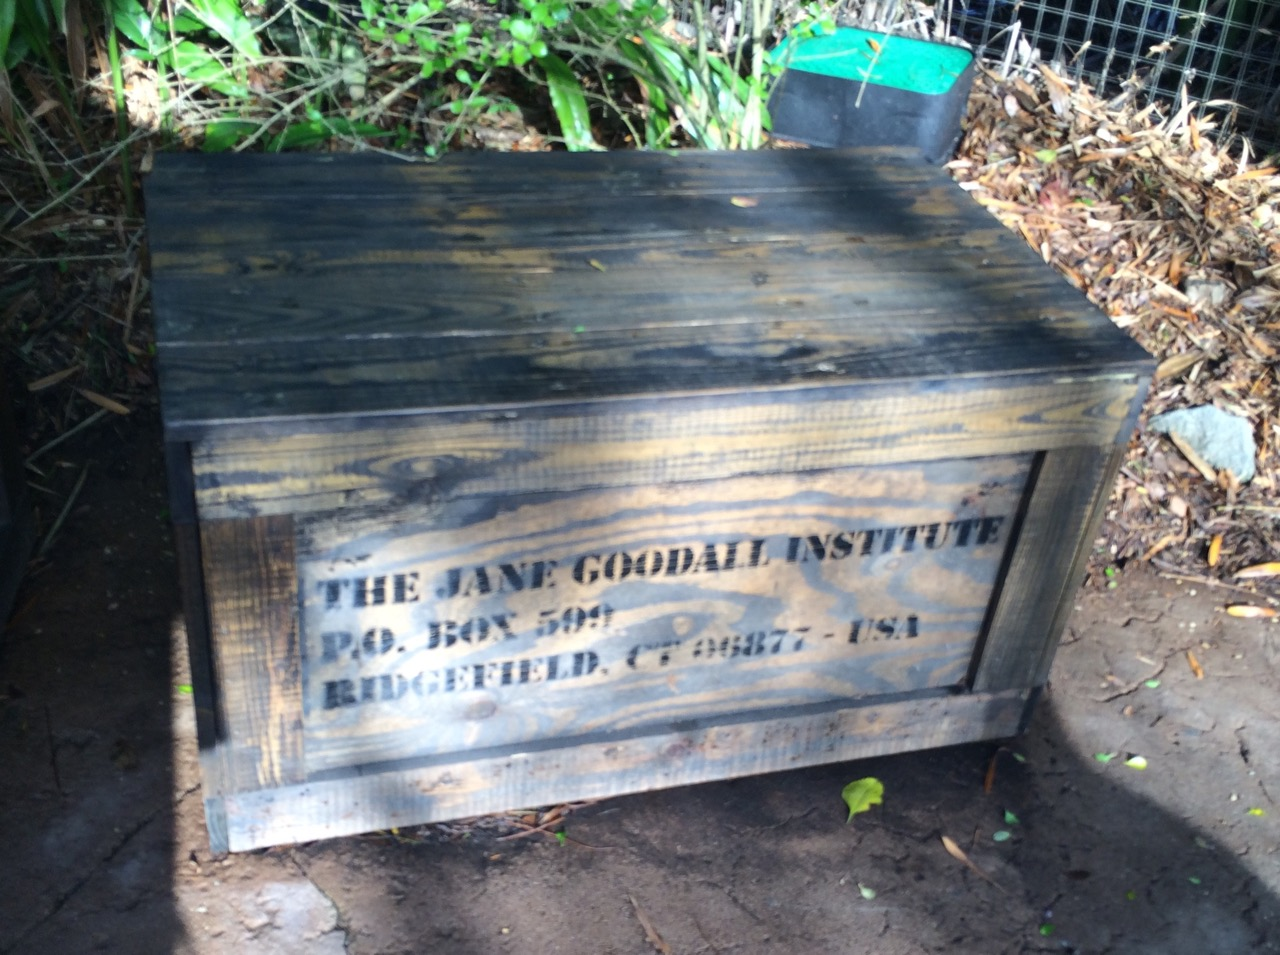 A tribute to Jane Goodall's work near the Gorilla exhibit at Disney's Animal Kingdom. Photo by J. Jeff Kober.